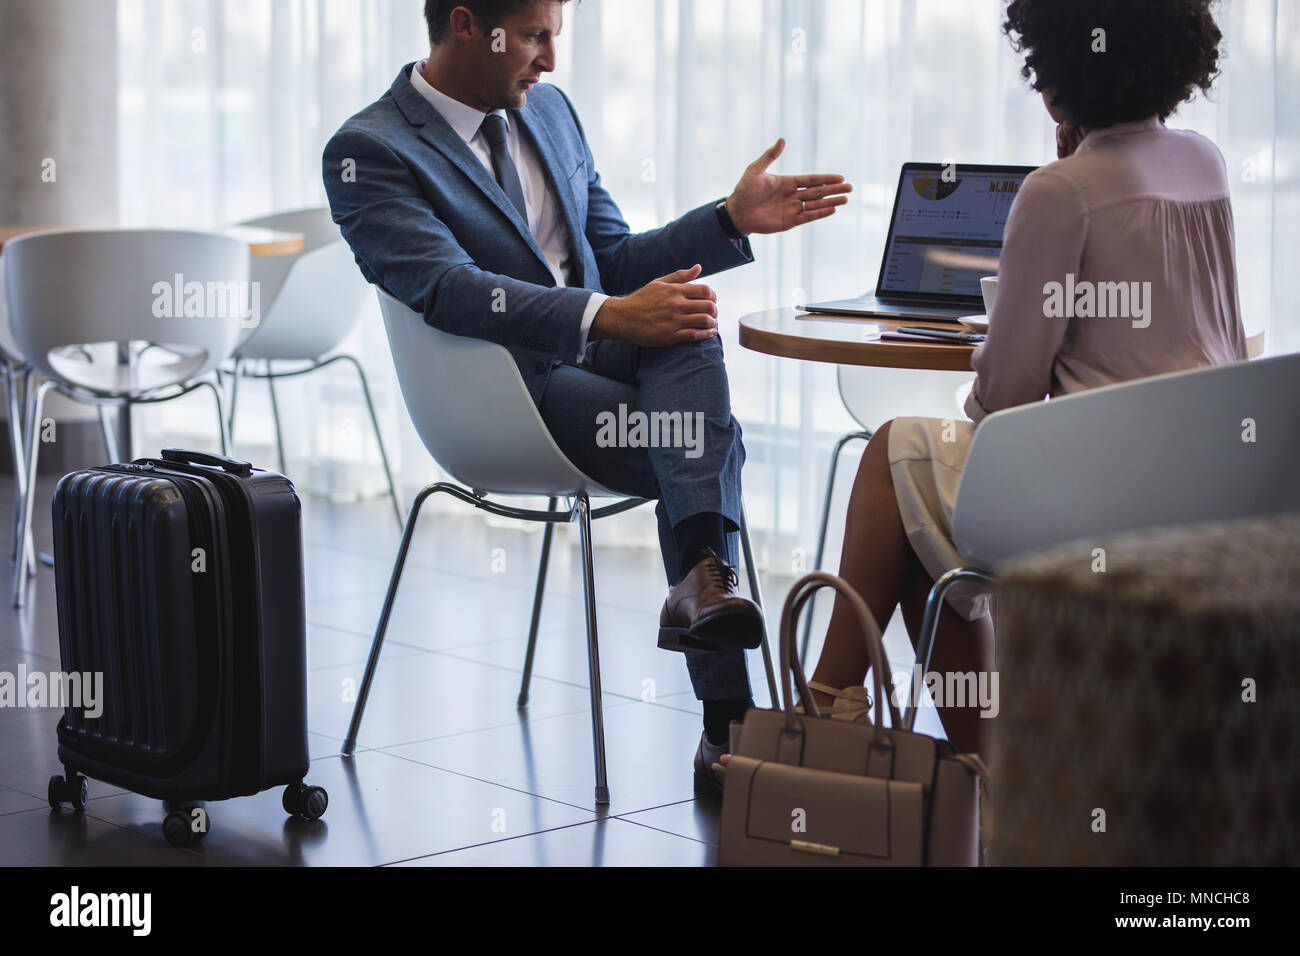 Business man showing something to woman while sitting at airport lounge. Business people working on laptop while waiting for their flight. Stock Photo